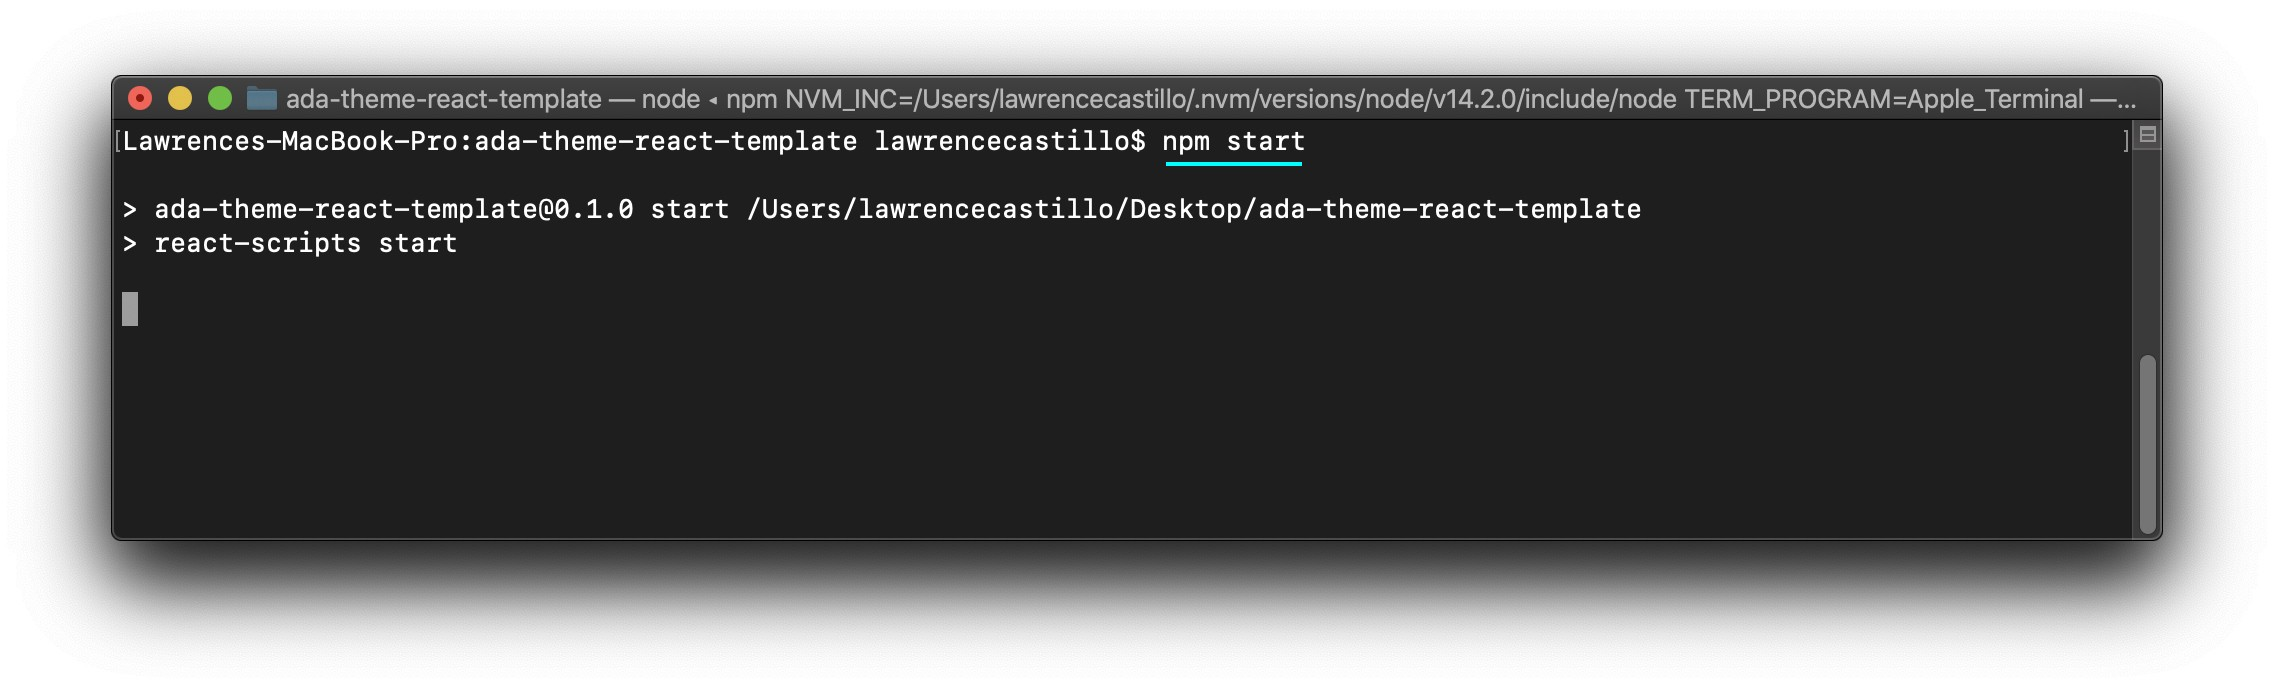 "Screenshot showing how to run the app using ""npm start"" from the Mac Terminal."